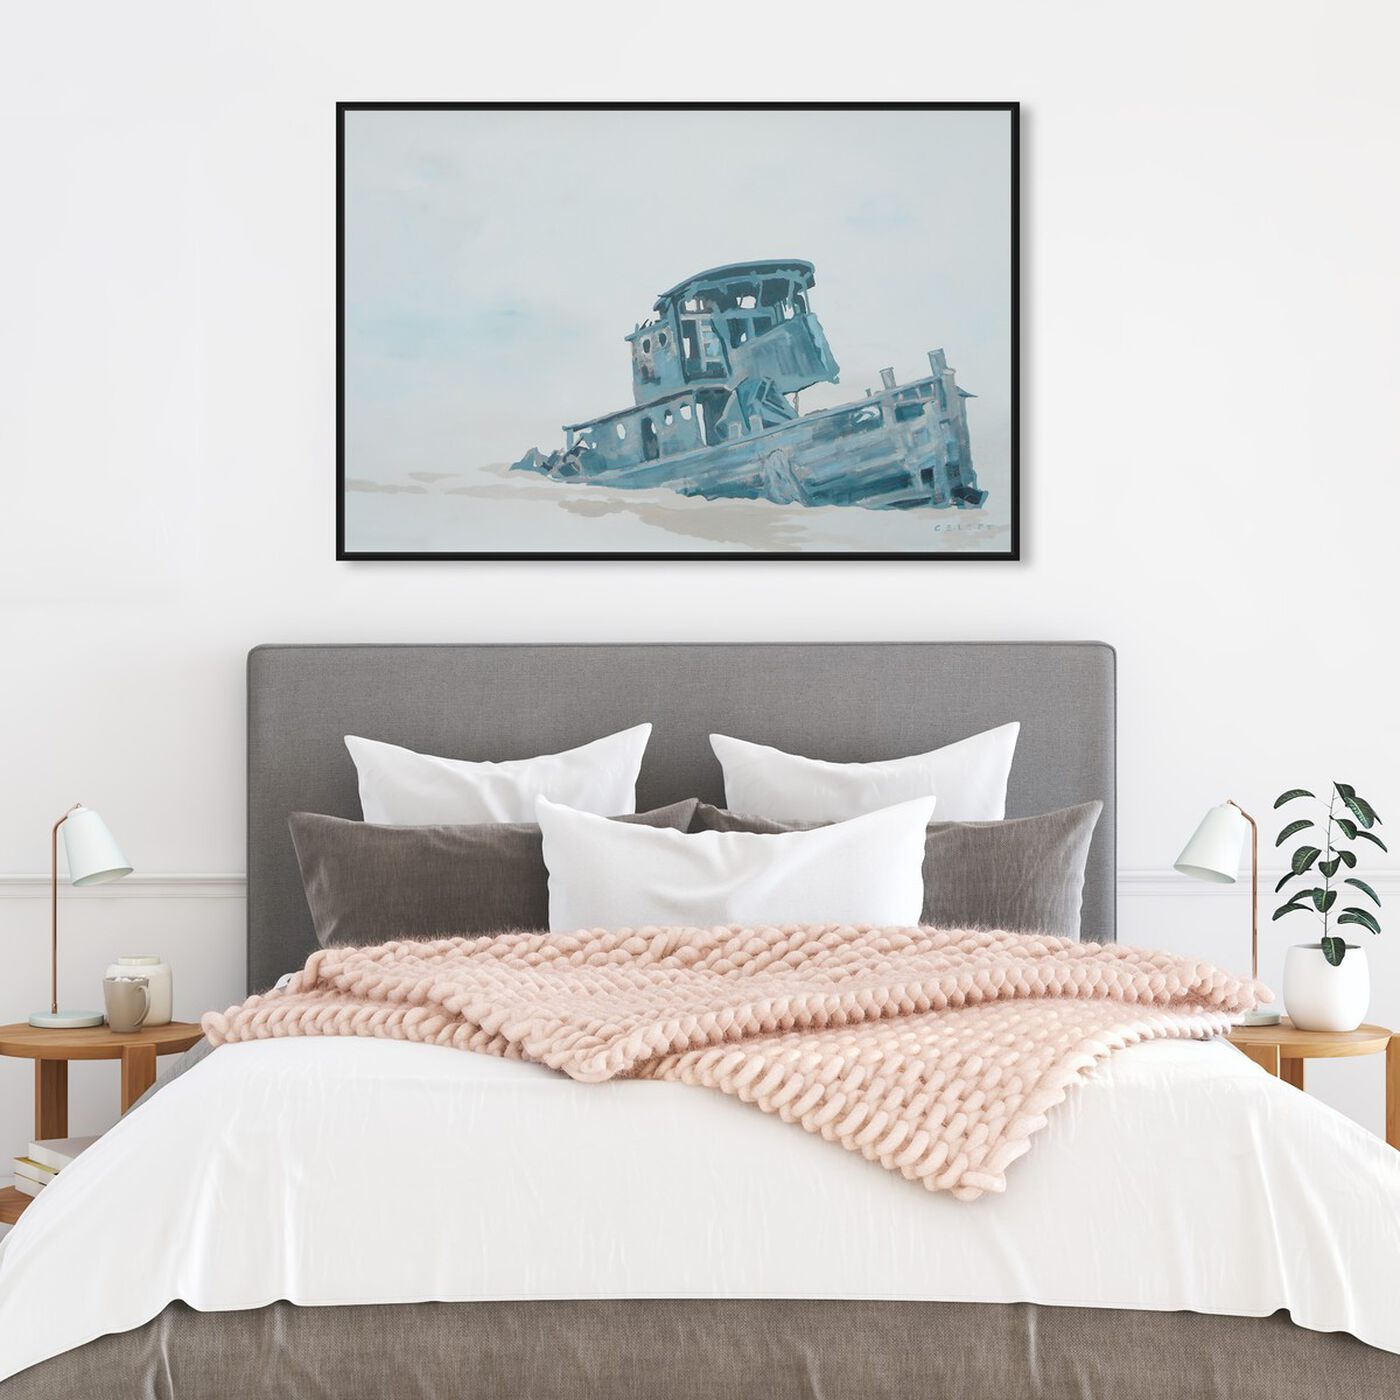 Hanging view of Celery Jones - I'l Just Leave This Right Here featuring nautical and coastal and nautical watercrafts art.